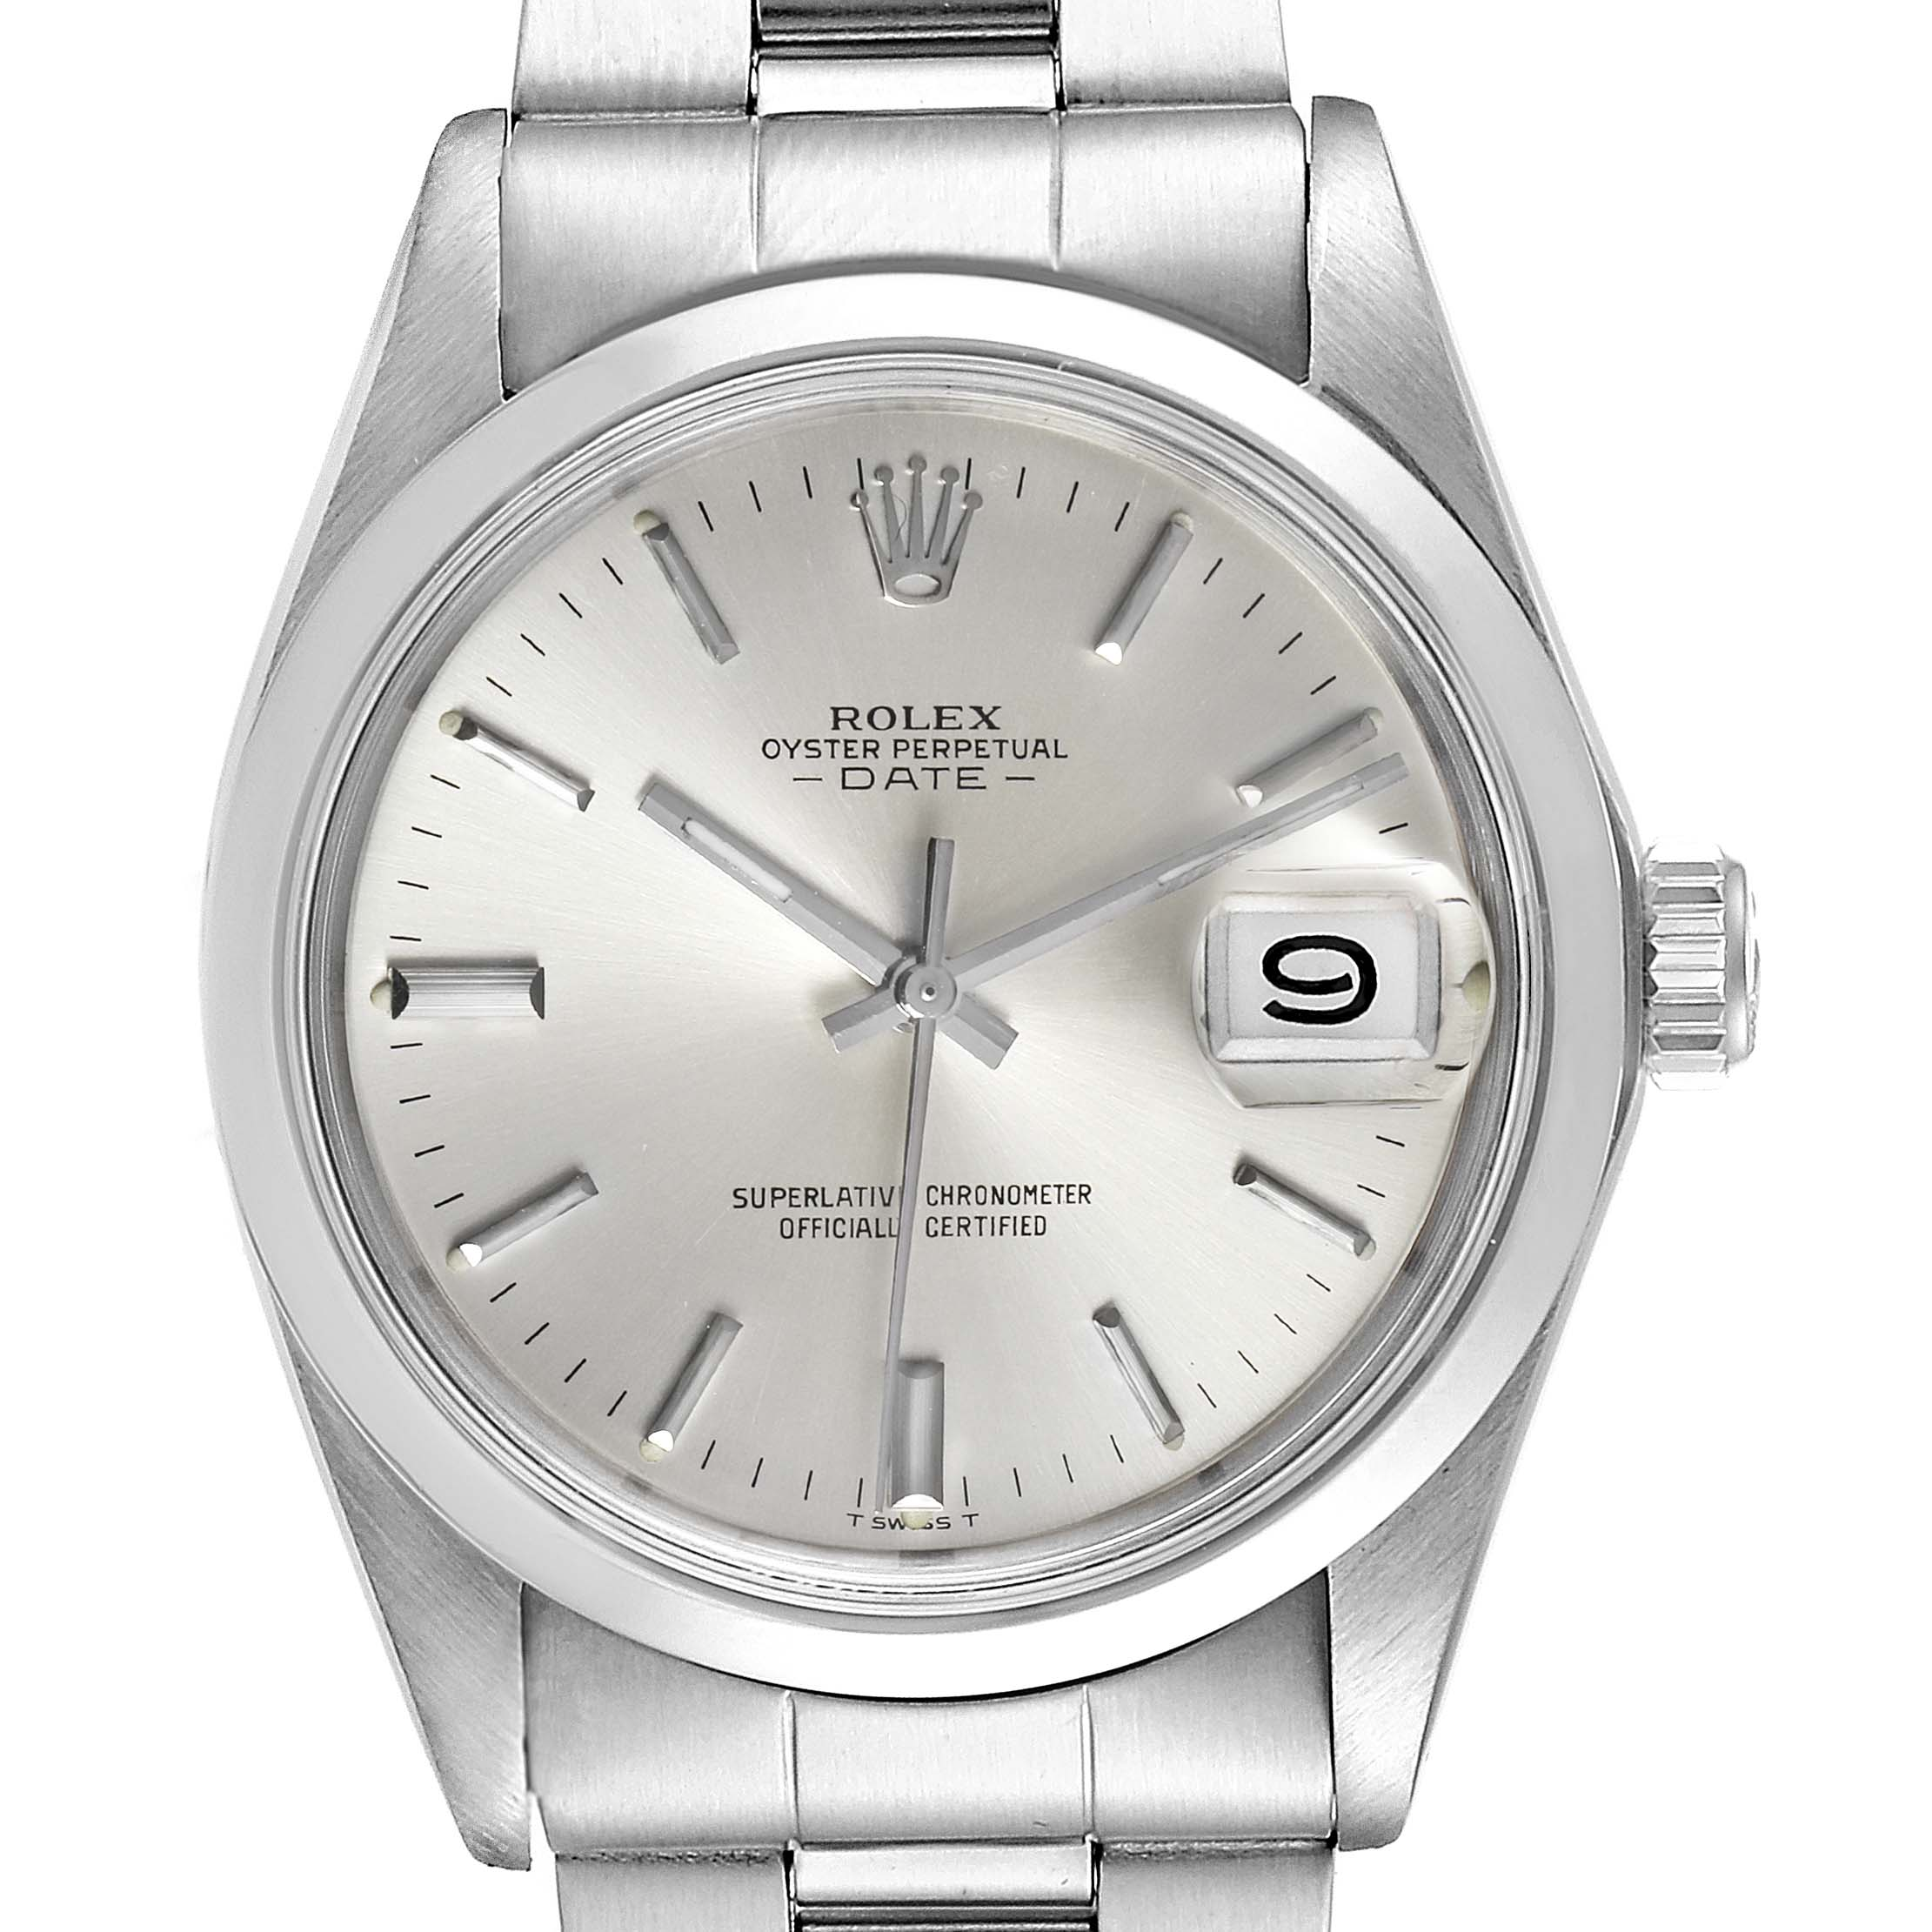 Photo of Rolex Date Silver Dial Domed Bezel Vintage Mens Watch 1500